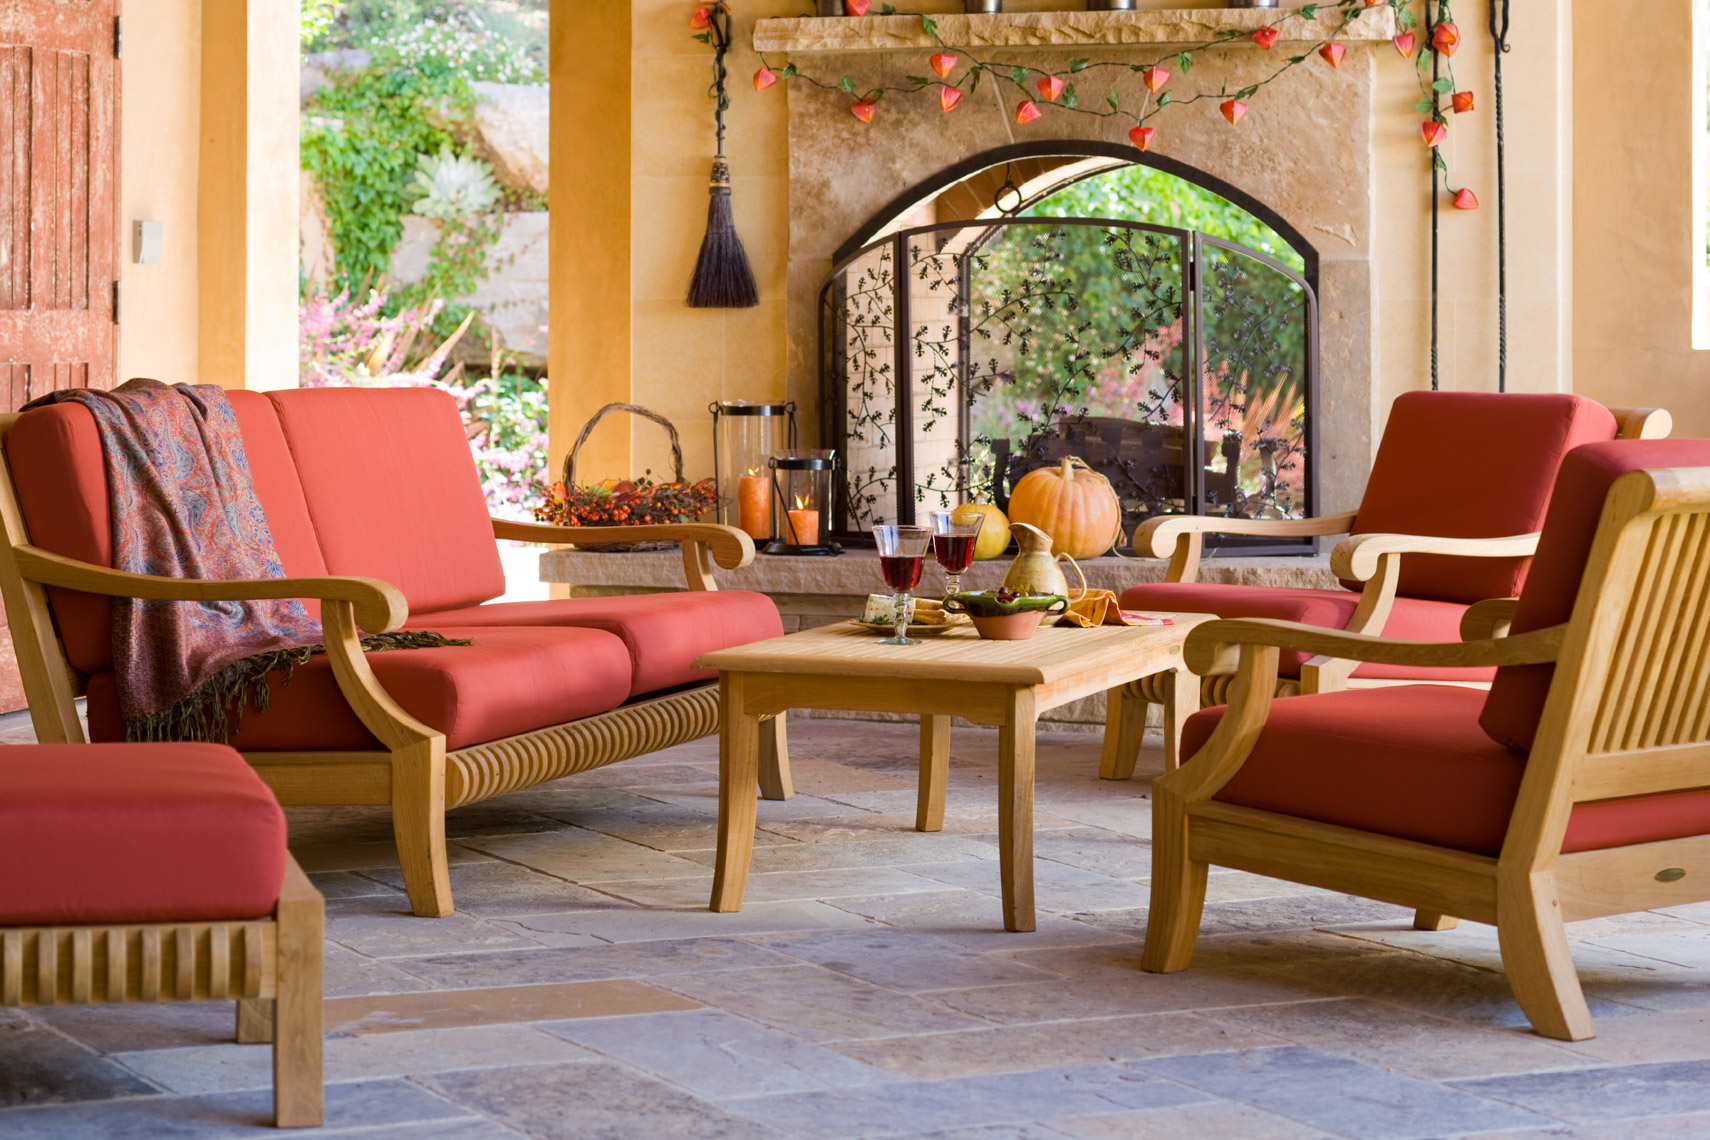 Teak lounging collection with red cushions on patio with fireplace